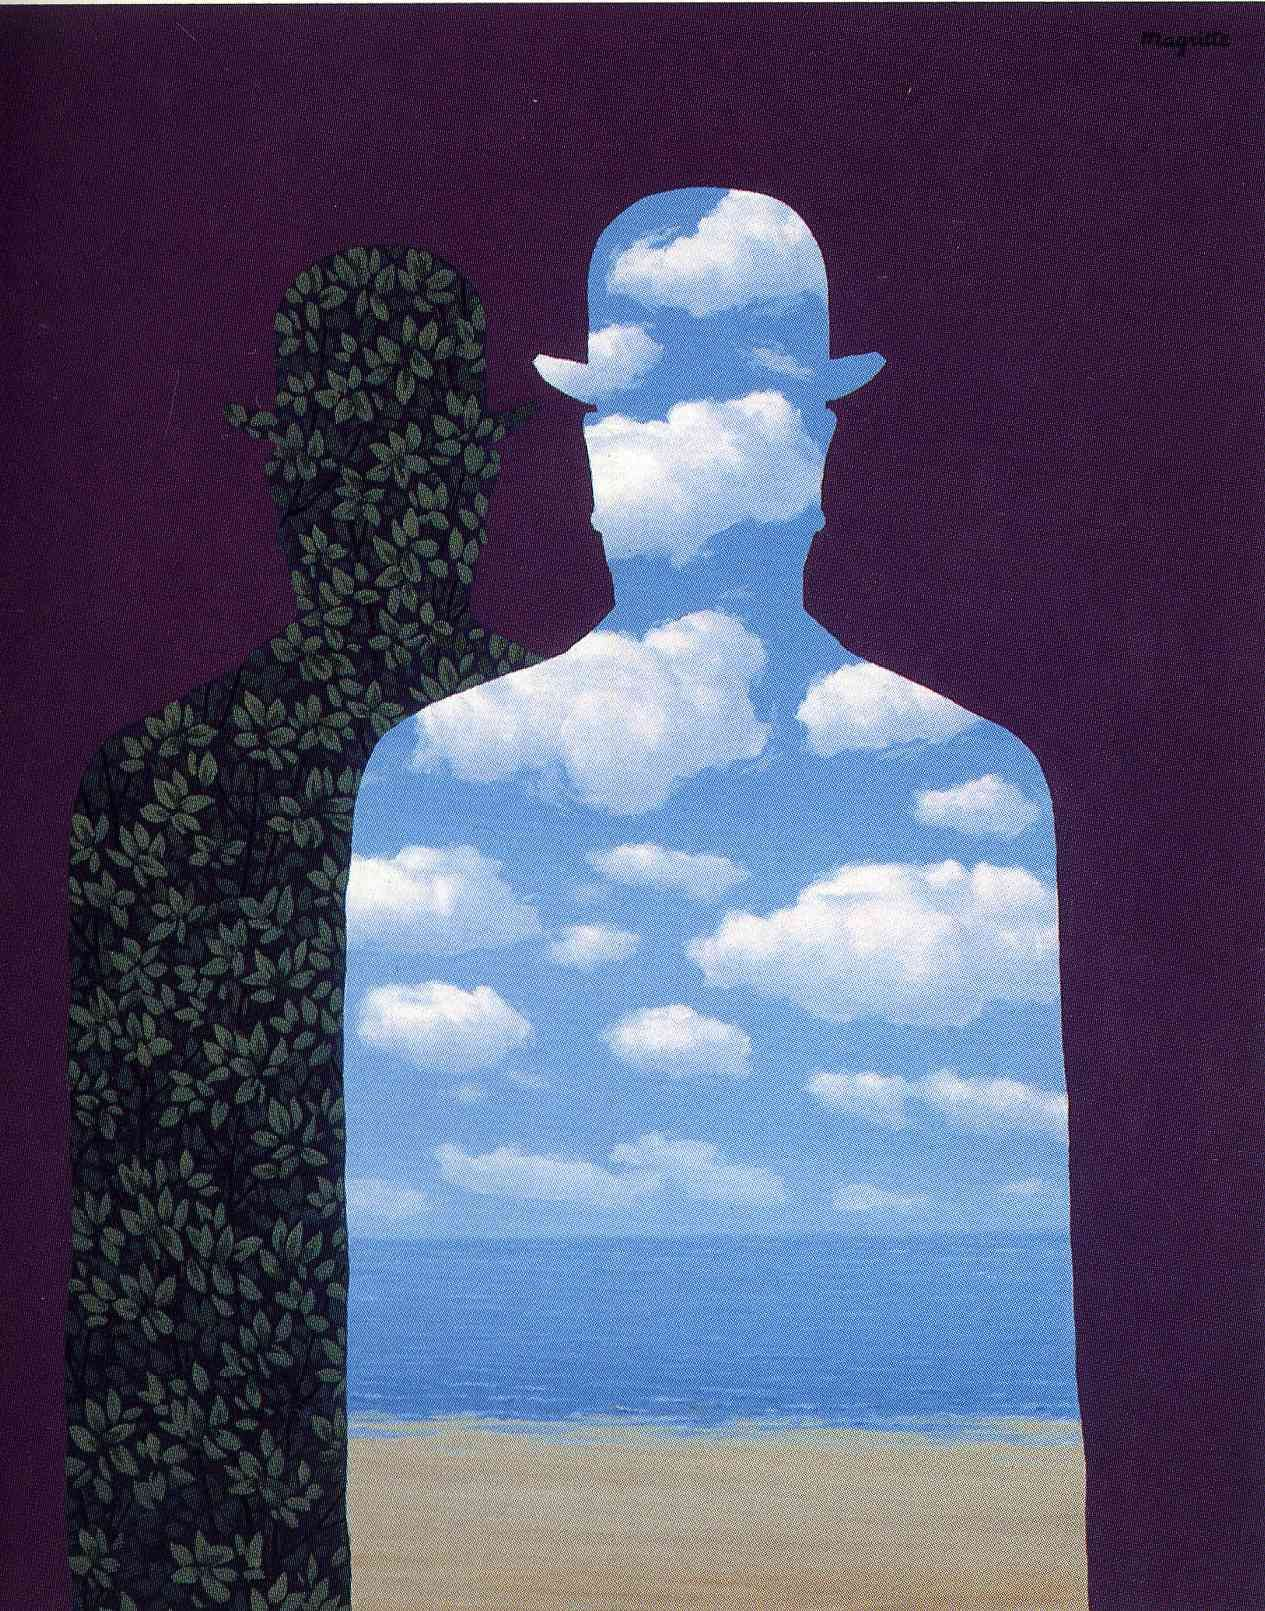 rene magritte paintings - Google Search   Maqritte   Pinterest ...